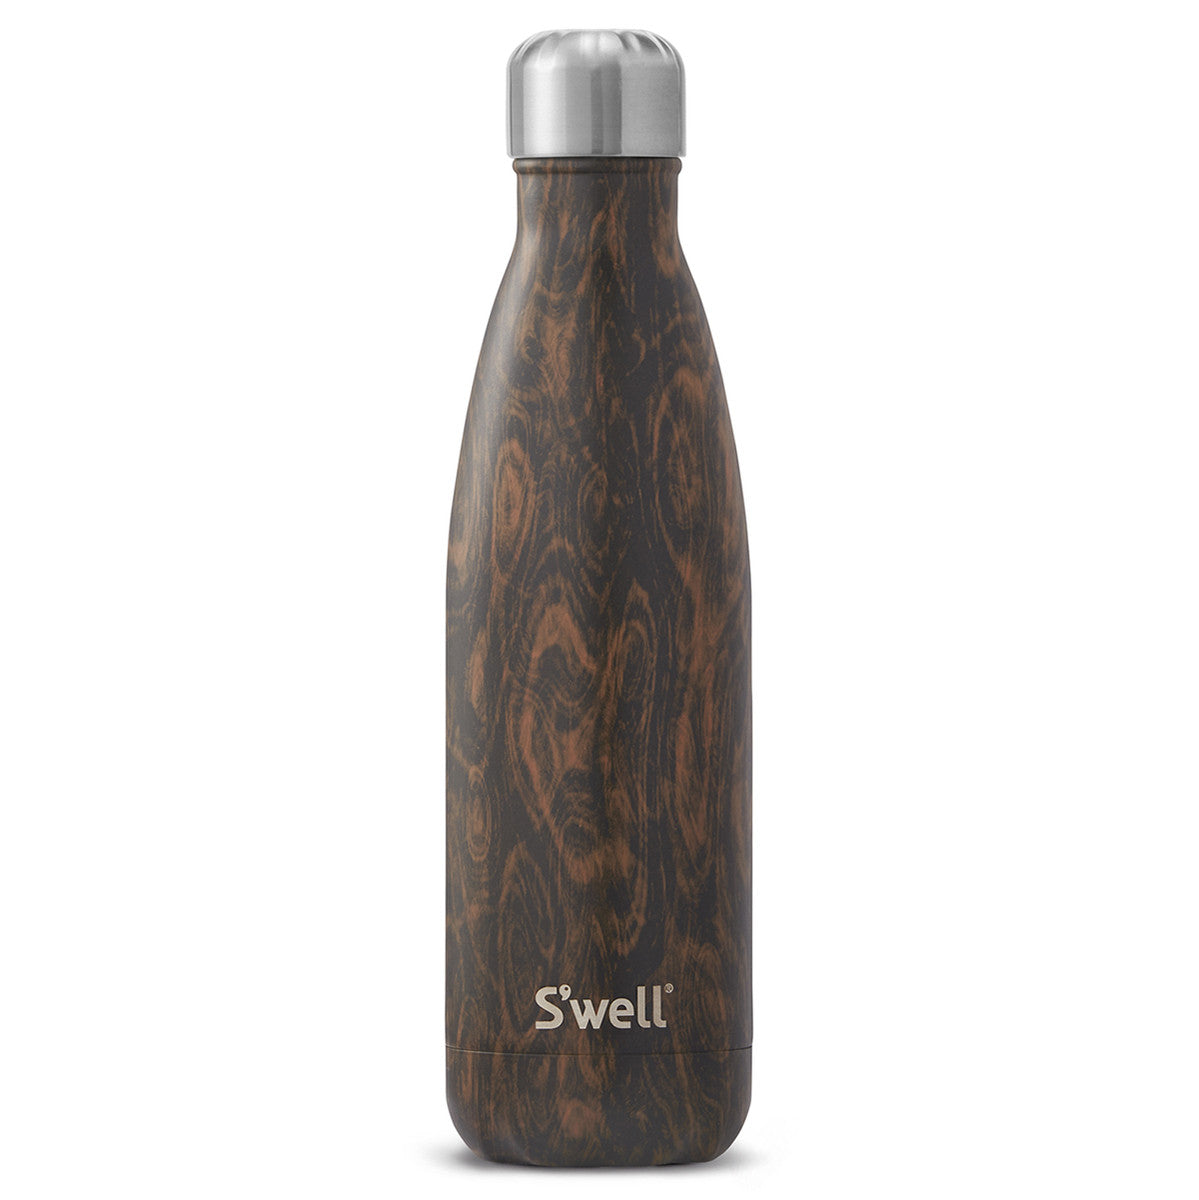 S'well 500ml Wood Collection